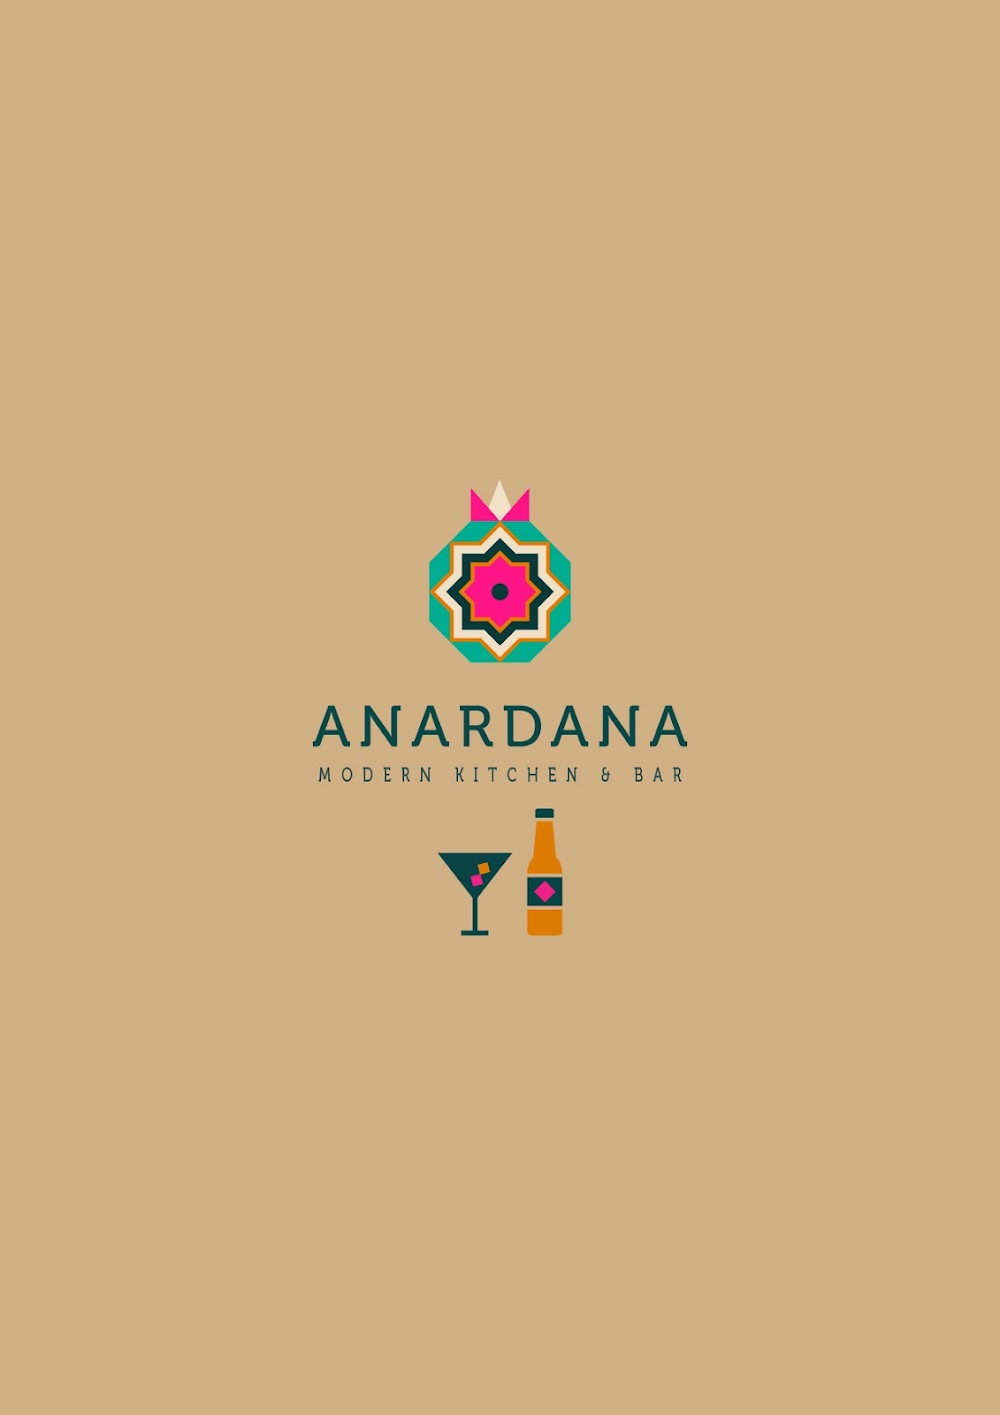 Anardana Modern Kitchen & Bar menu 1